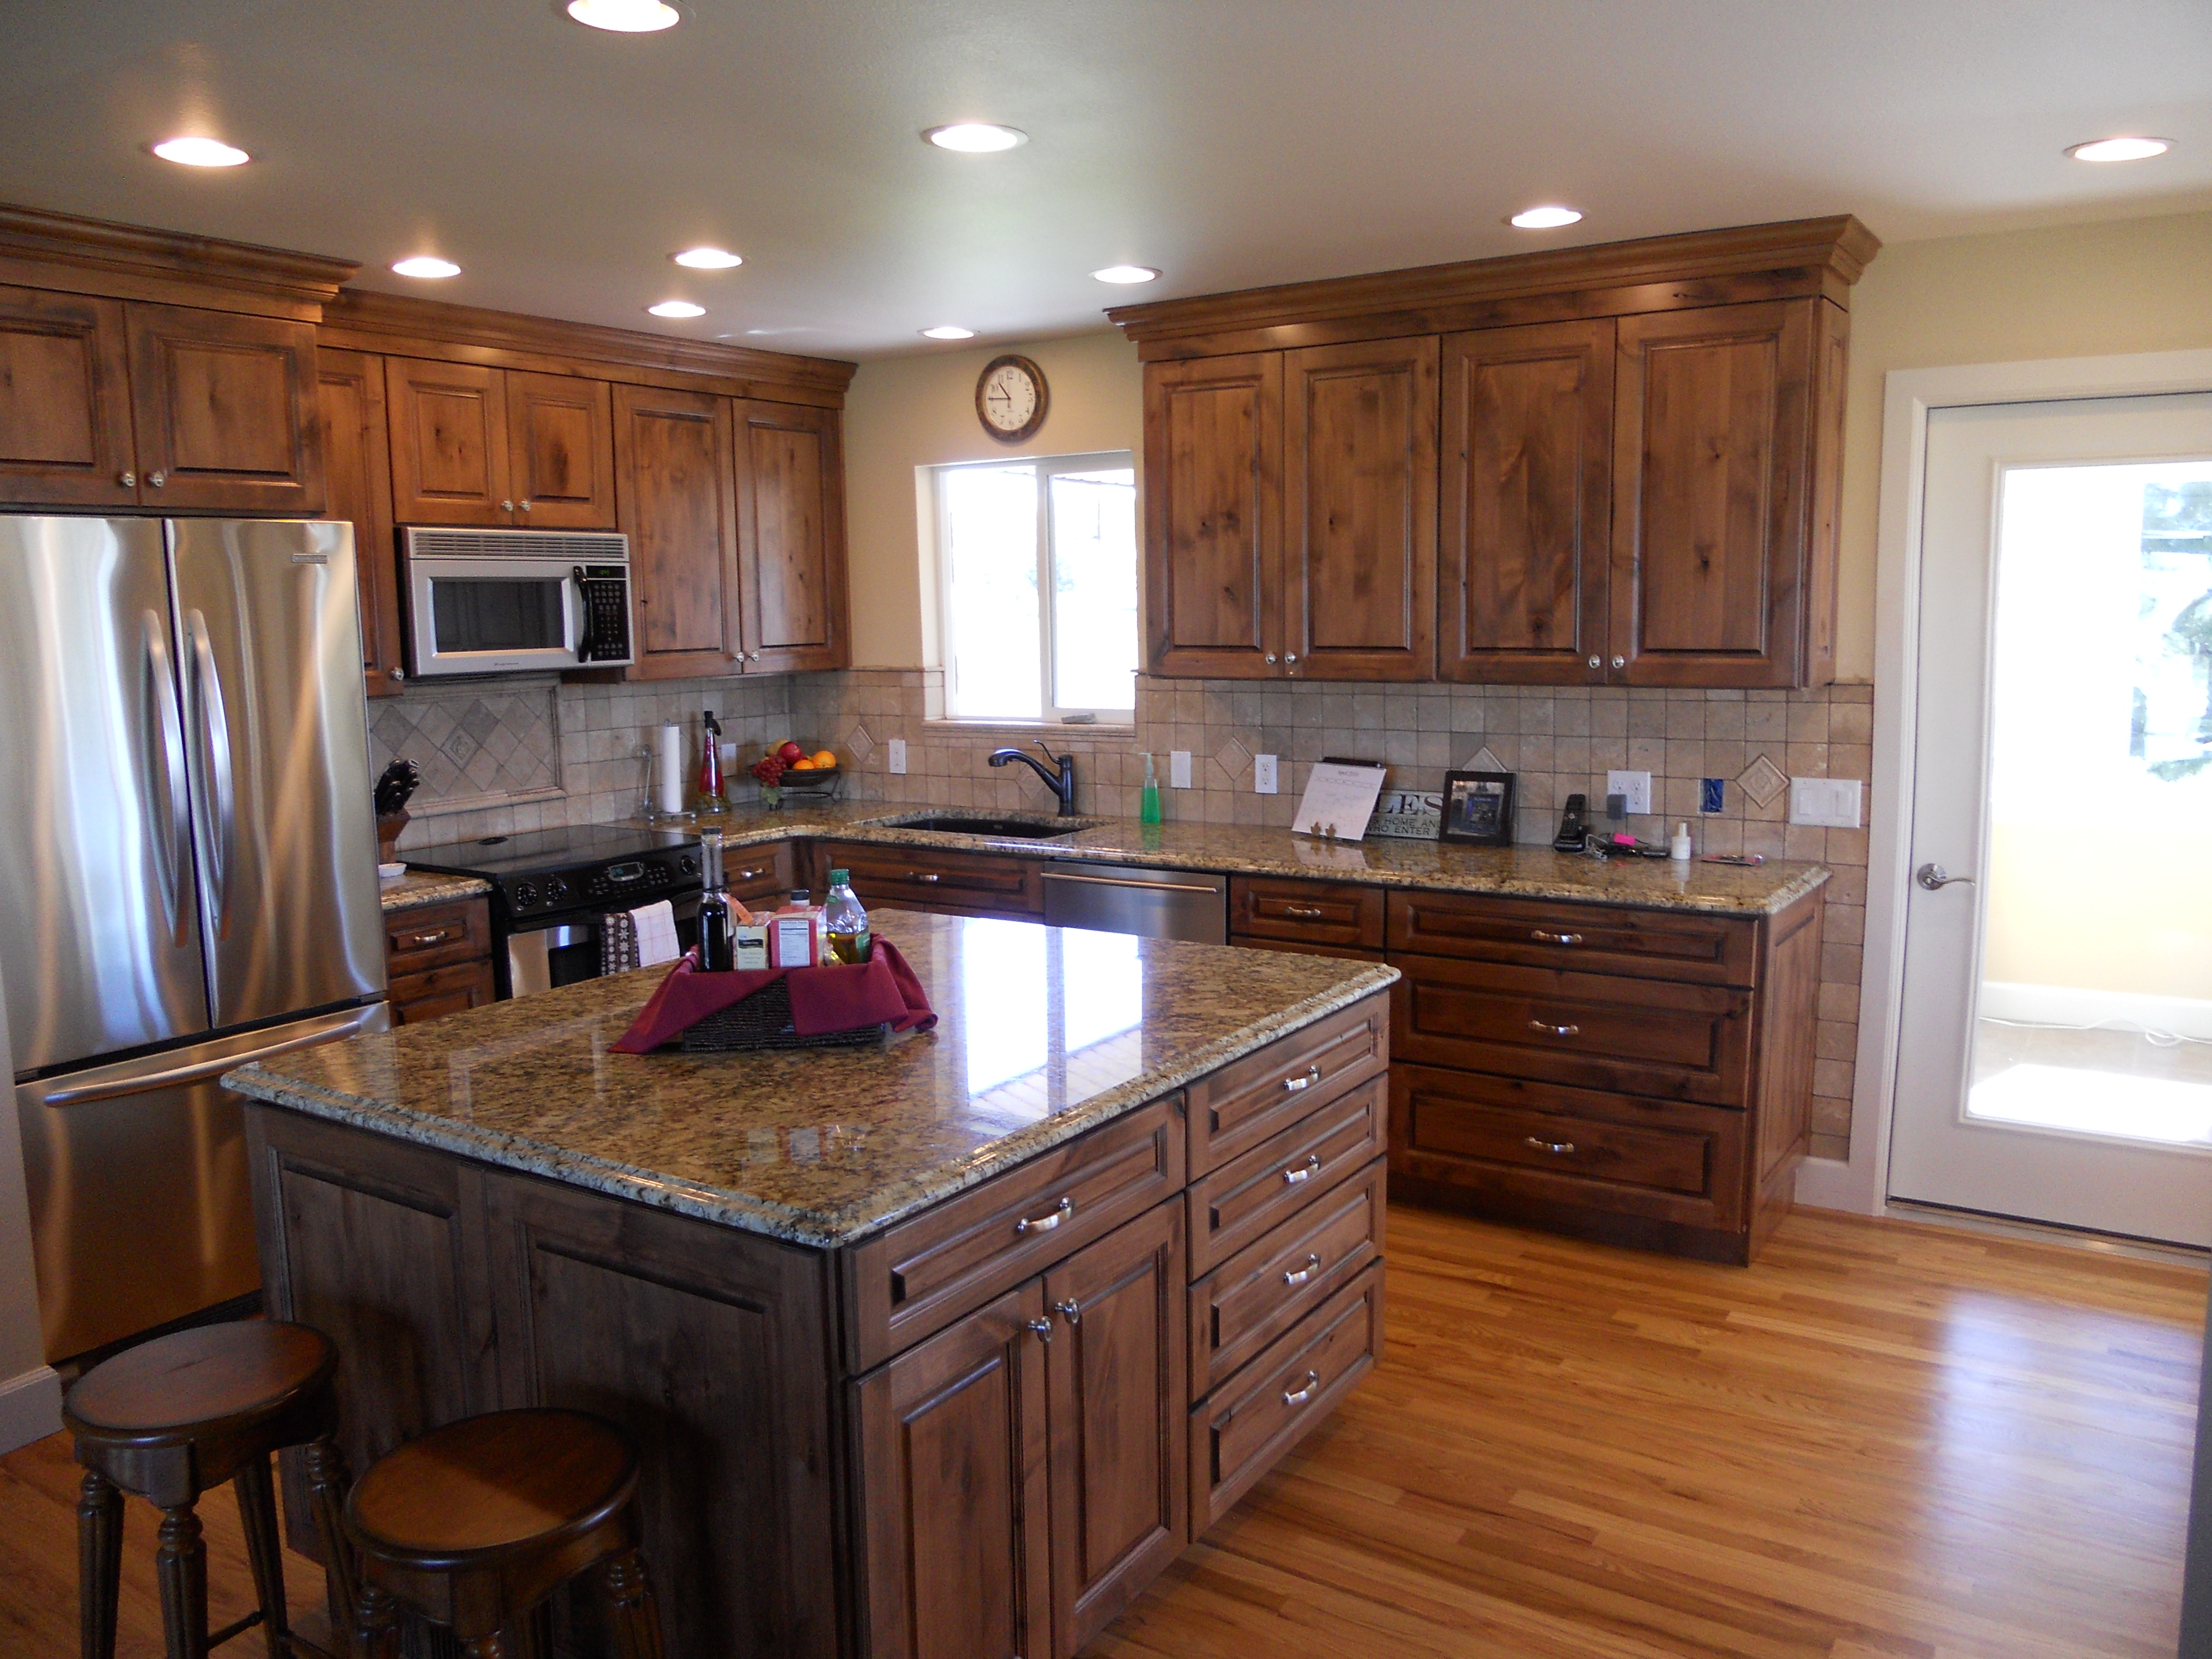 Kitchen Cabinets Requirements For Fha